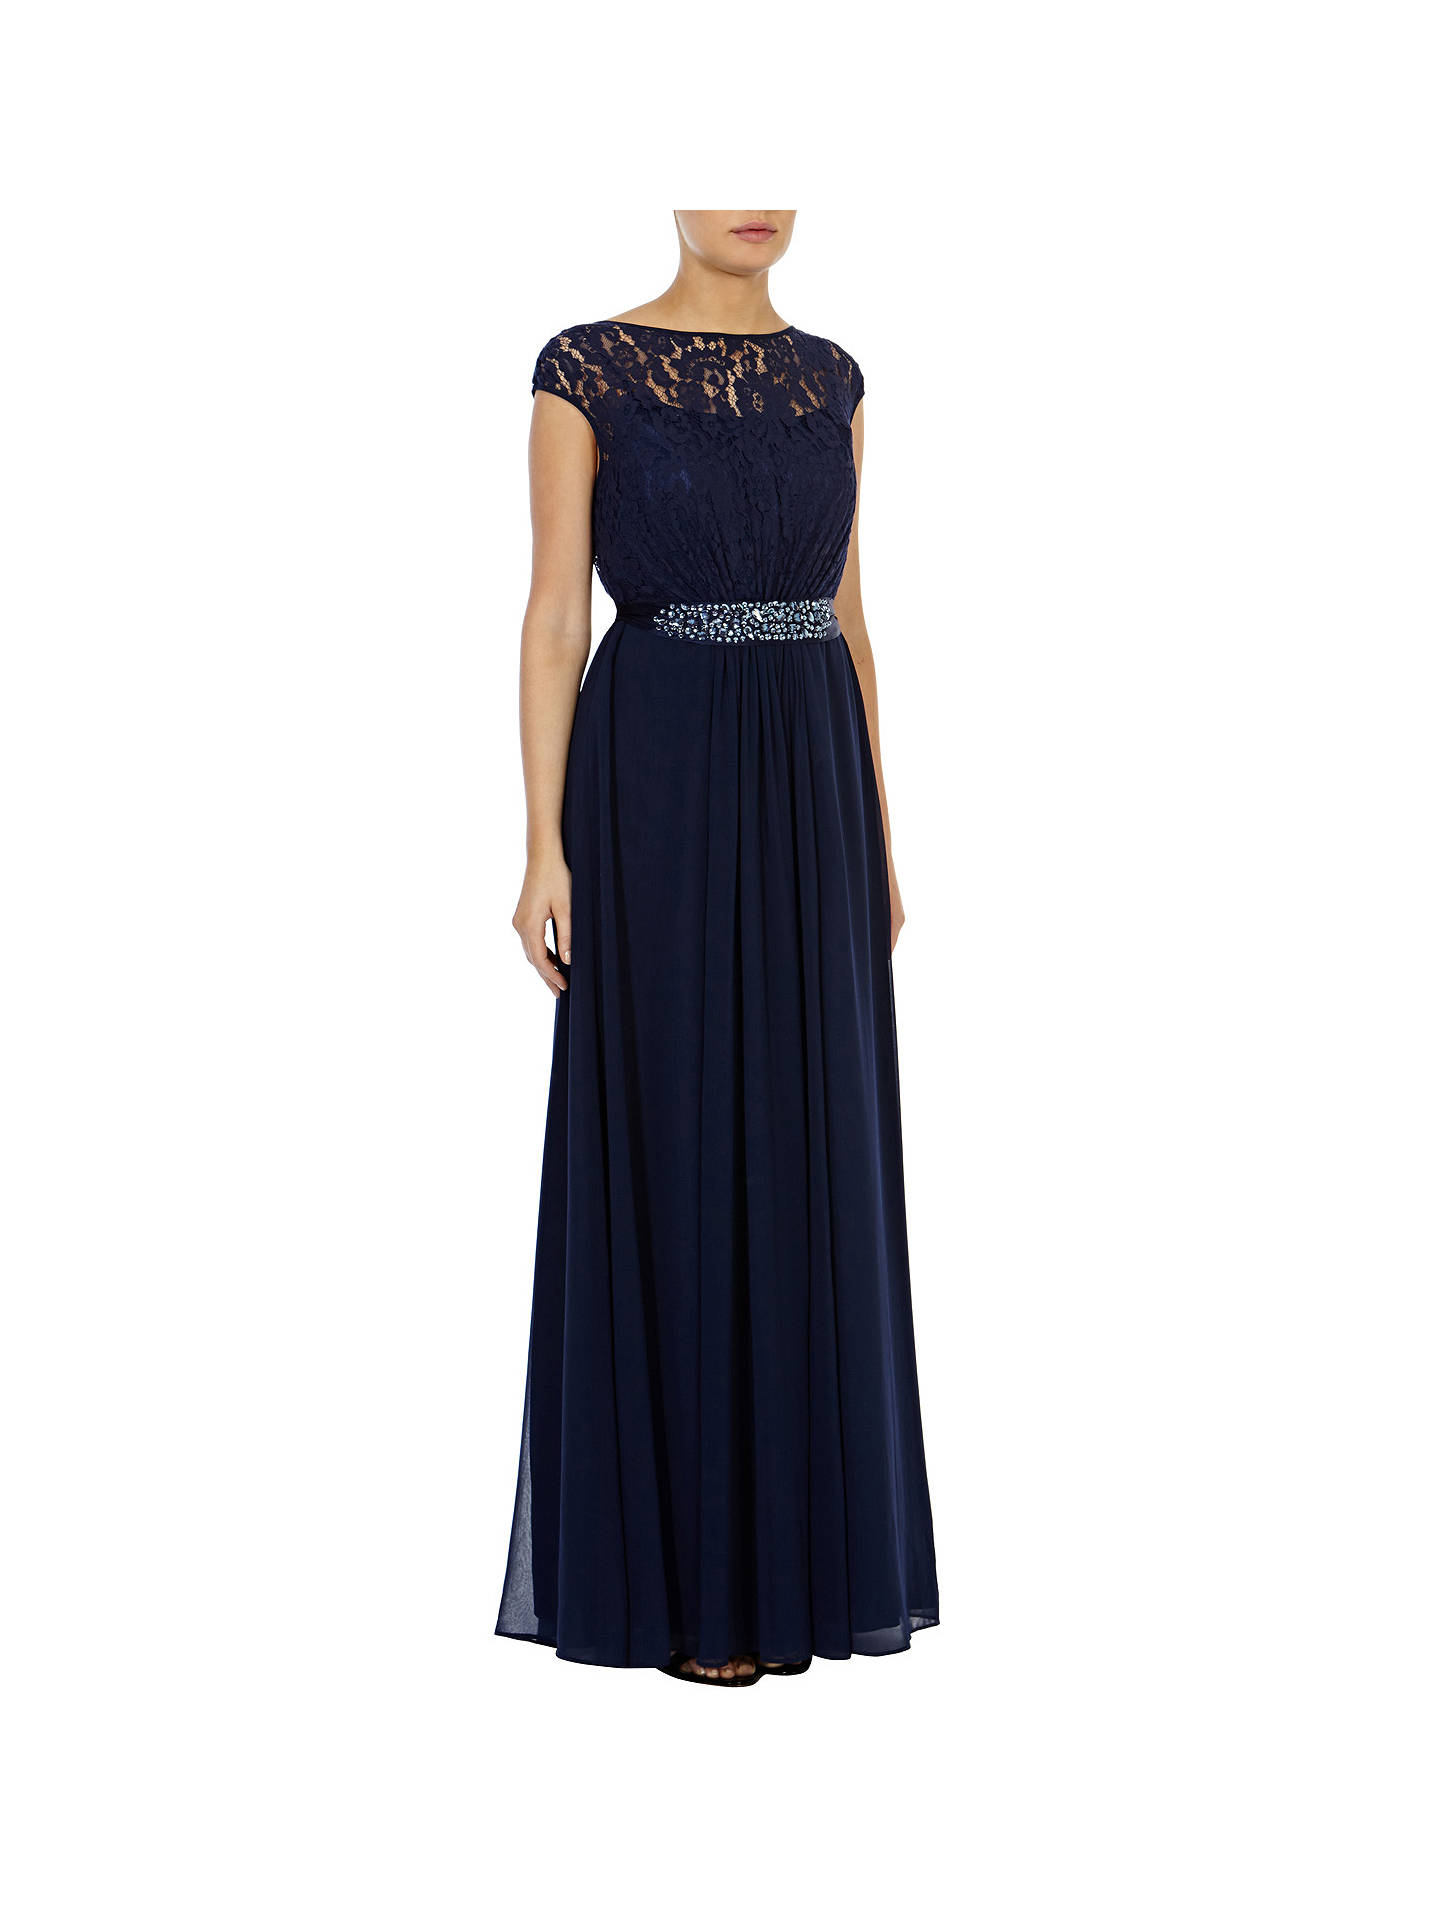 cfe9b35f7bacb Buy Coast Lori Lee Lace Maxi Dress, Navy, 6 Online at johnlewis.com ...